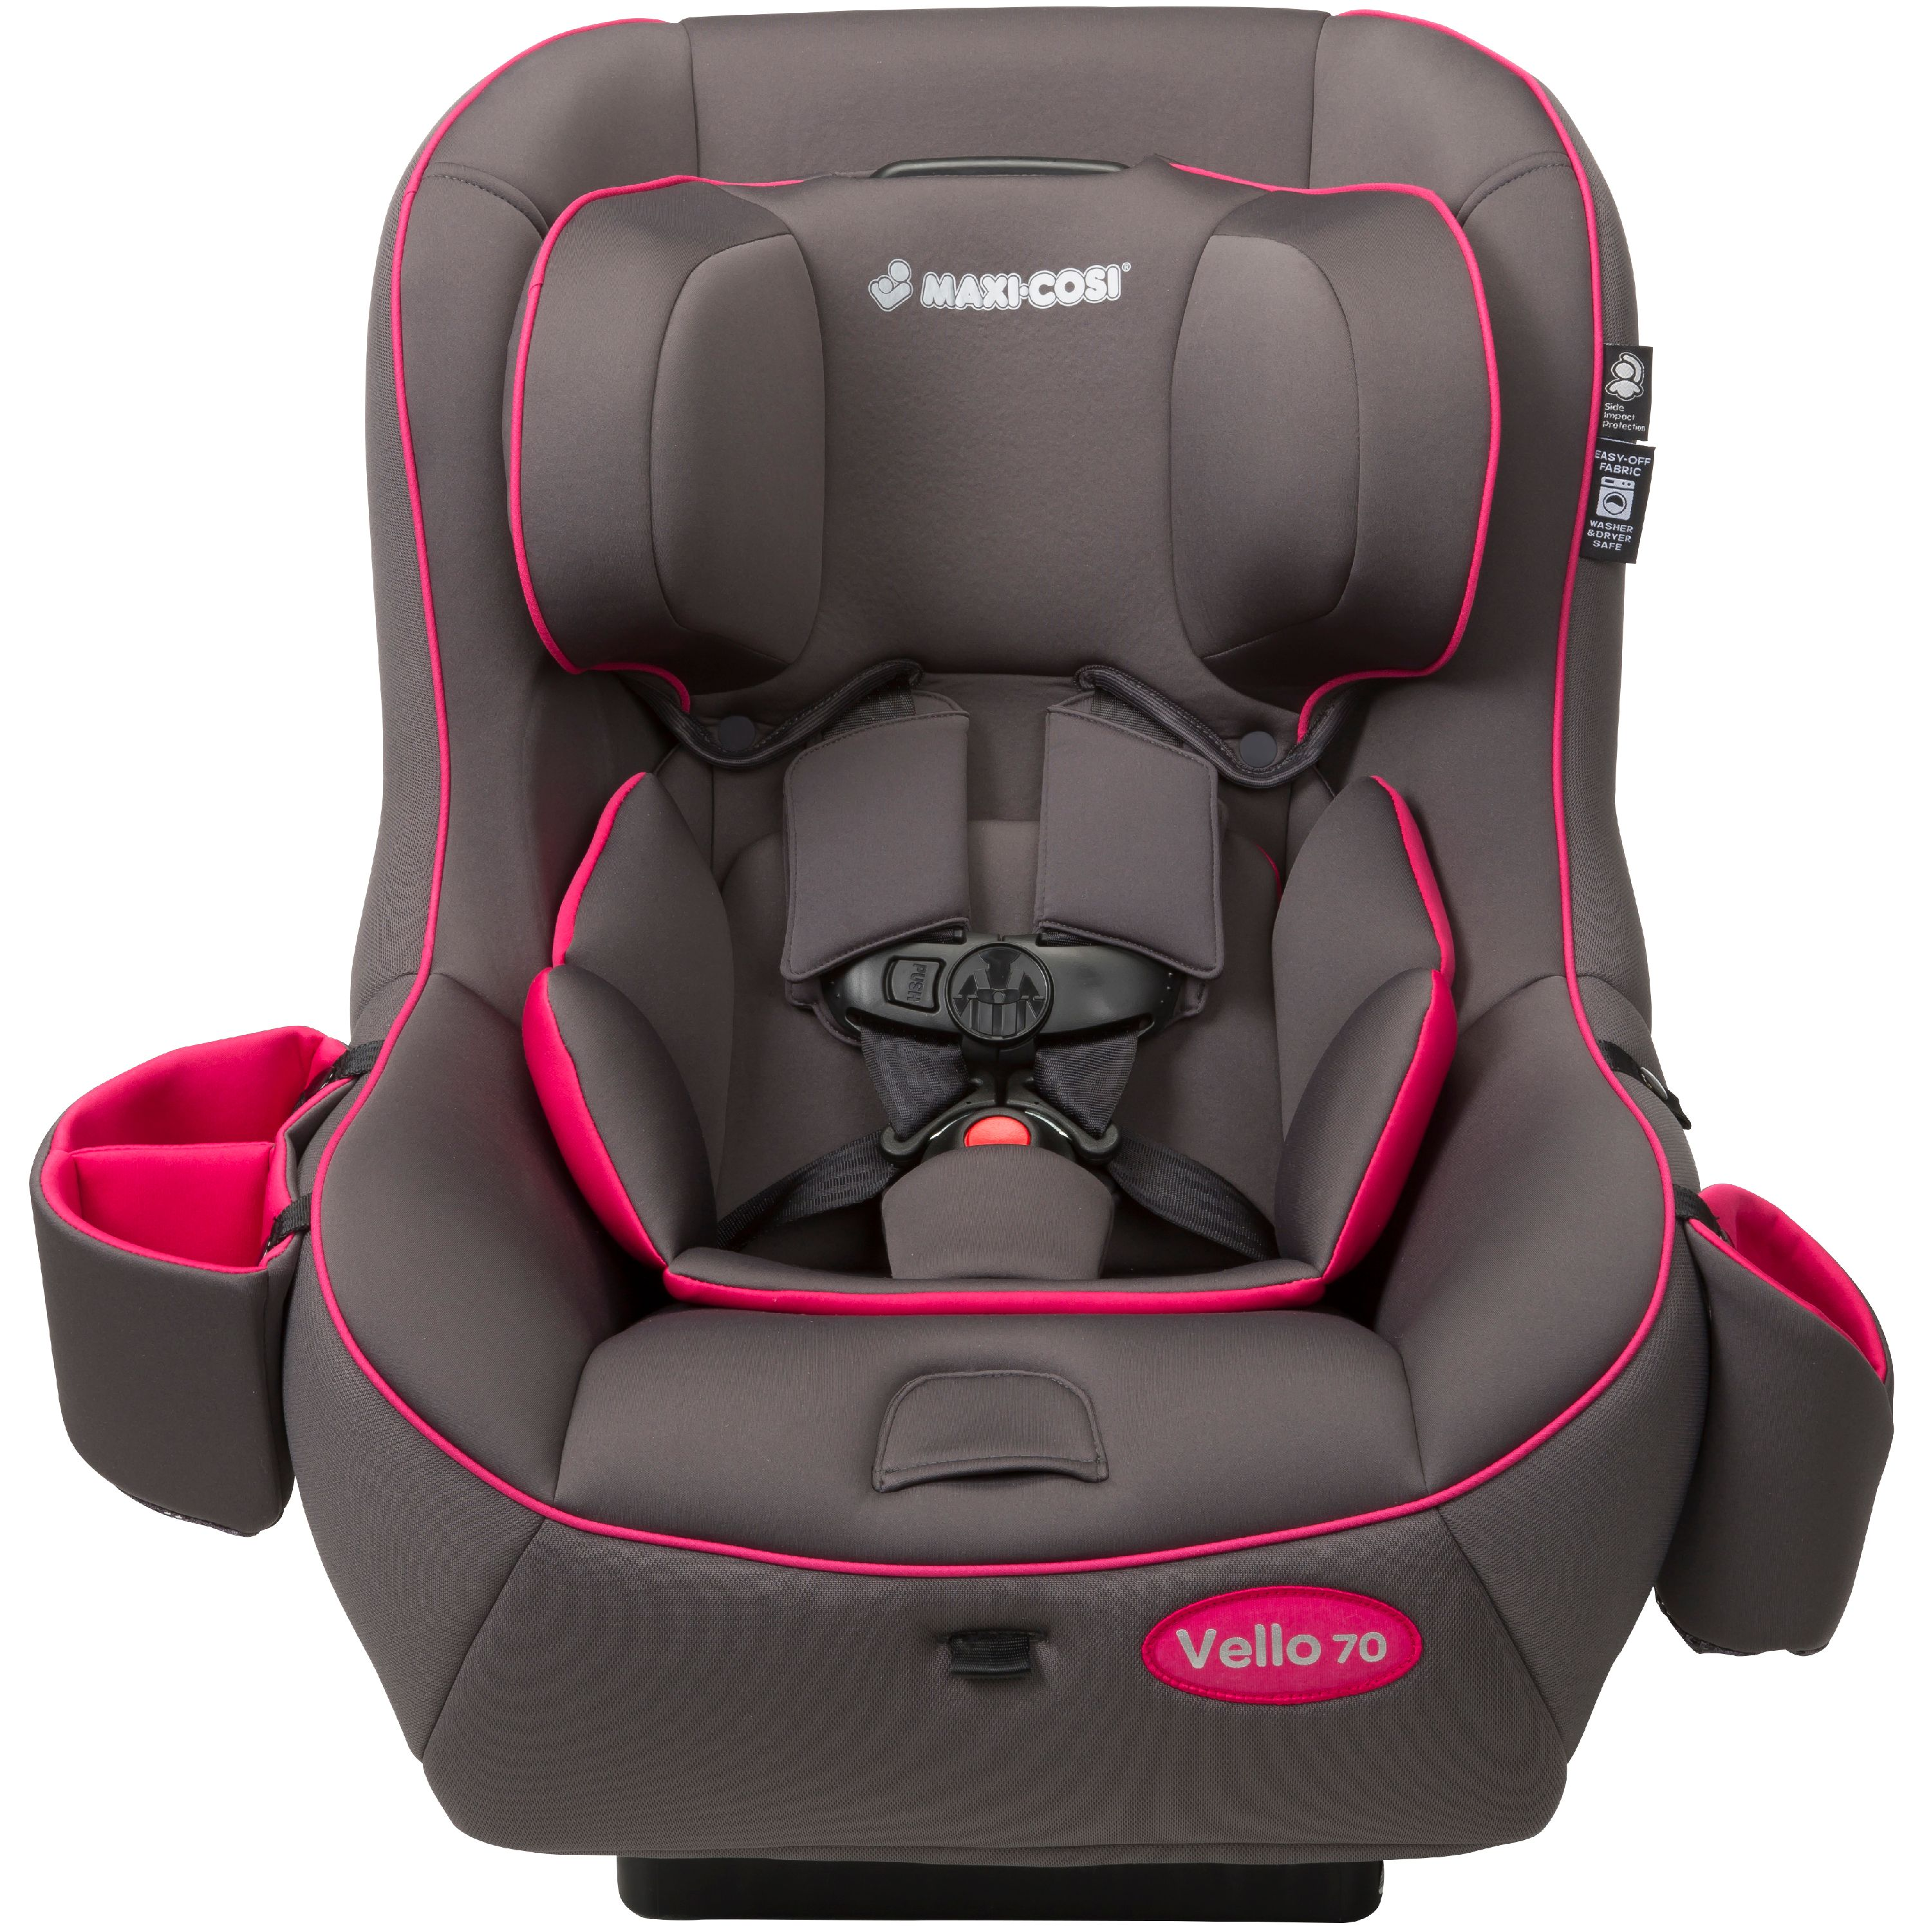 Maxi Cosi Vello 70 Convertible Car Seat, Gray & Pink